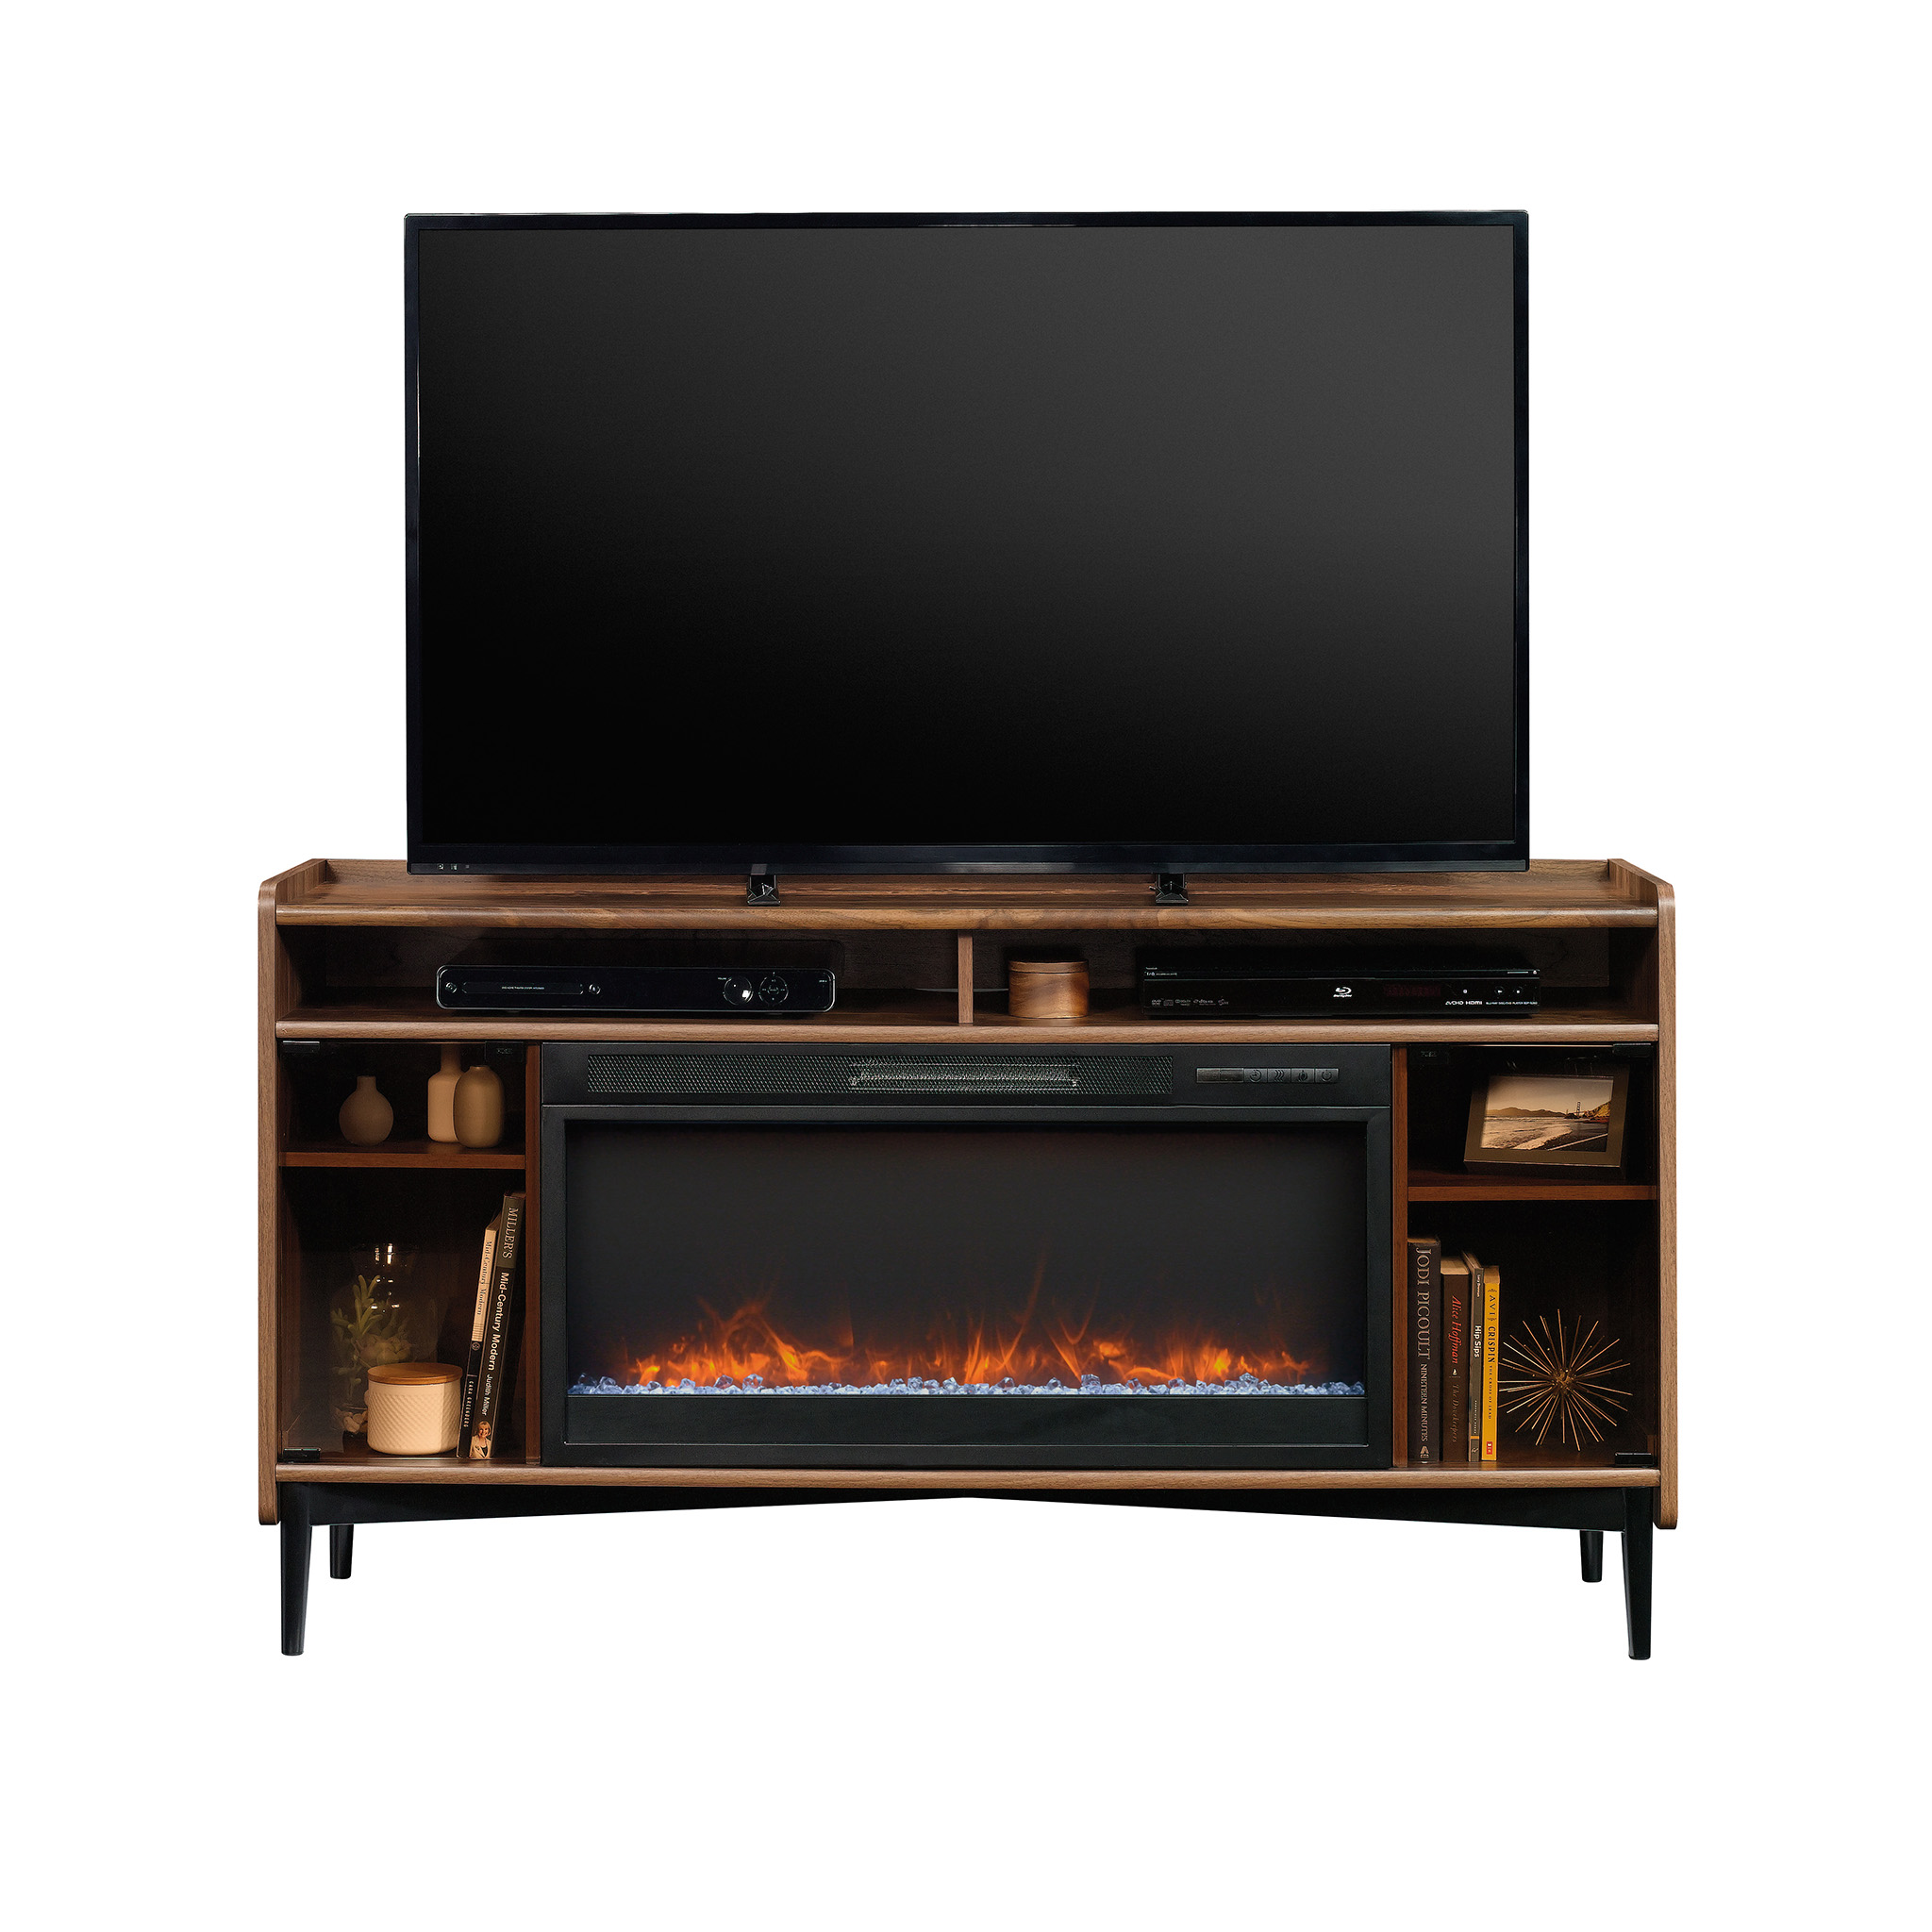 "Better Homes & Gardens Montclair Entertainment Fireplace Credenza for most 60"" Flatscreen TVs up to 70 lbs, Vintage Walnut Finish"